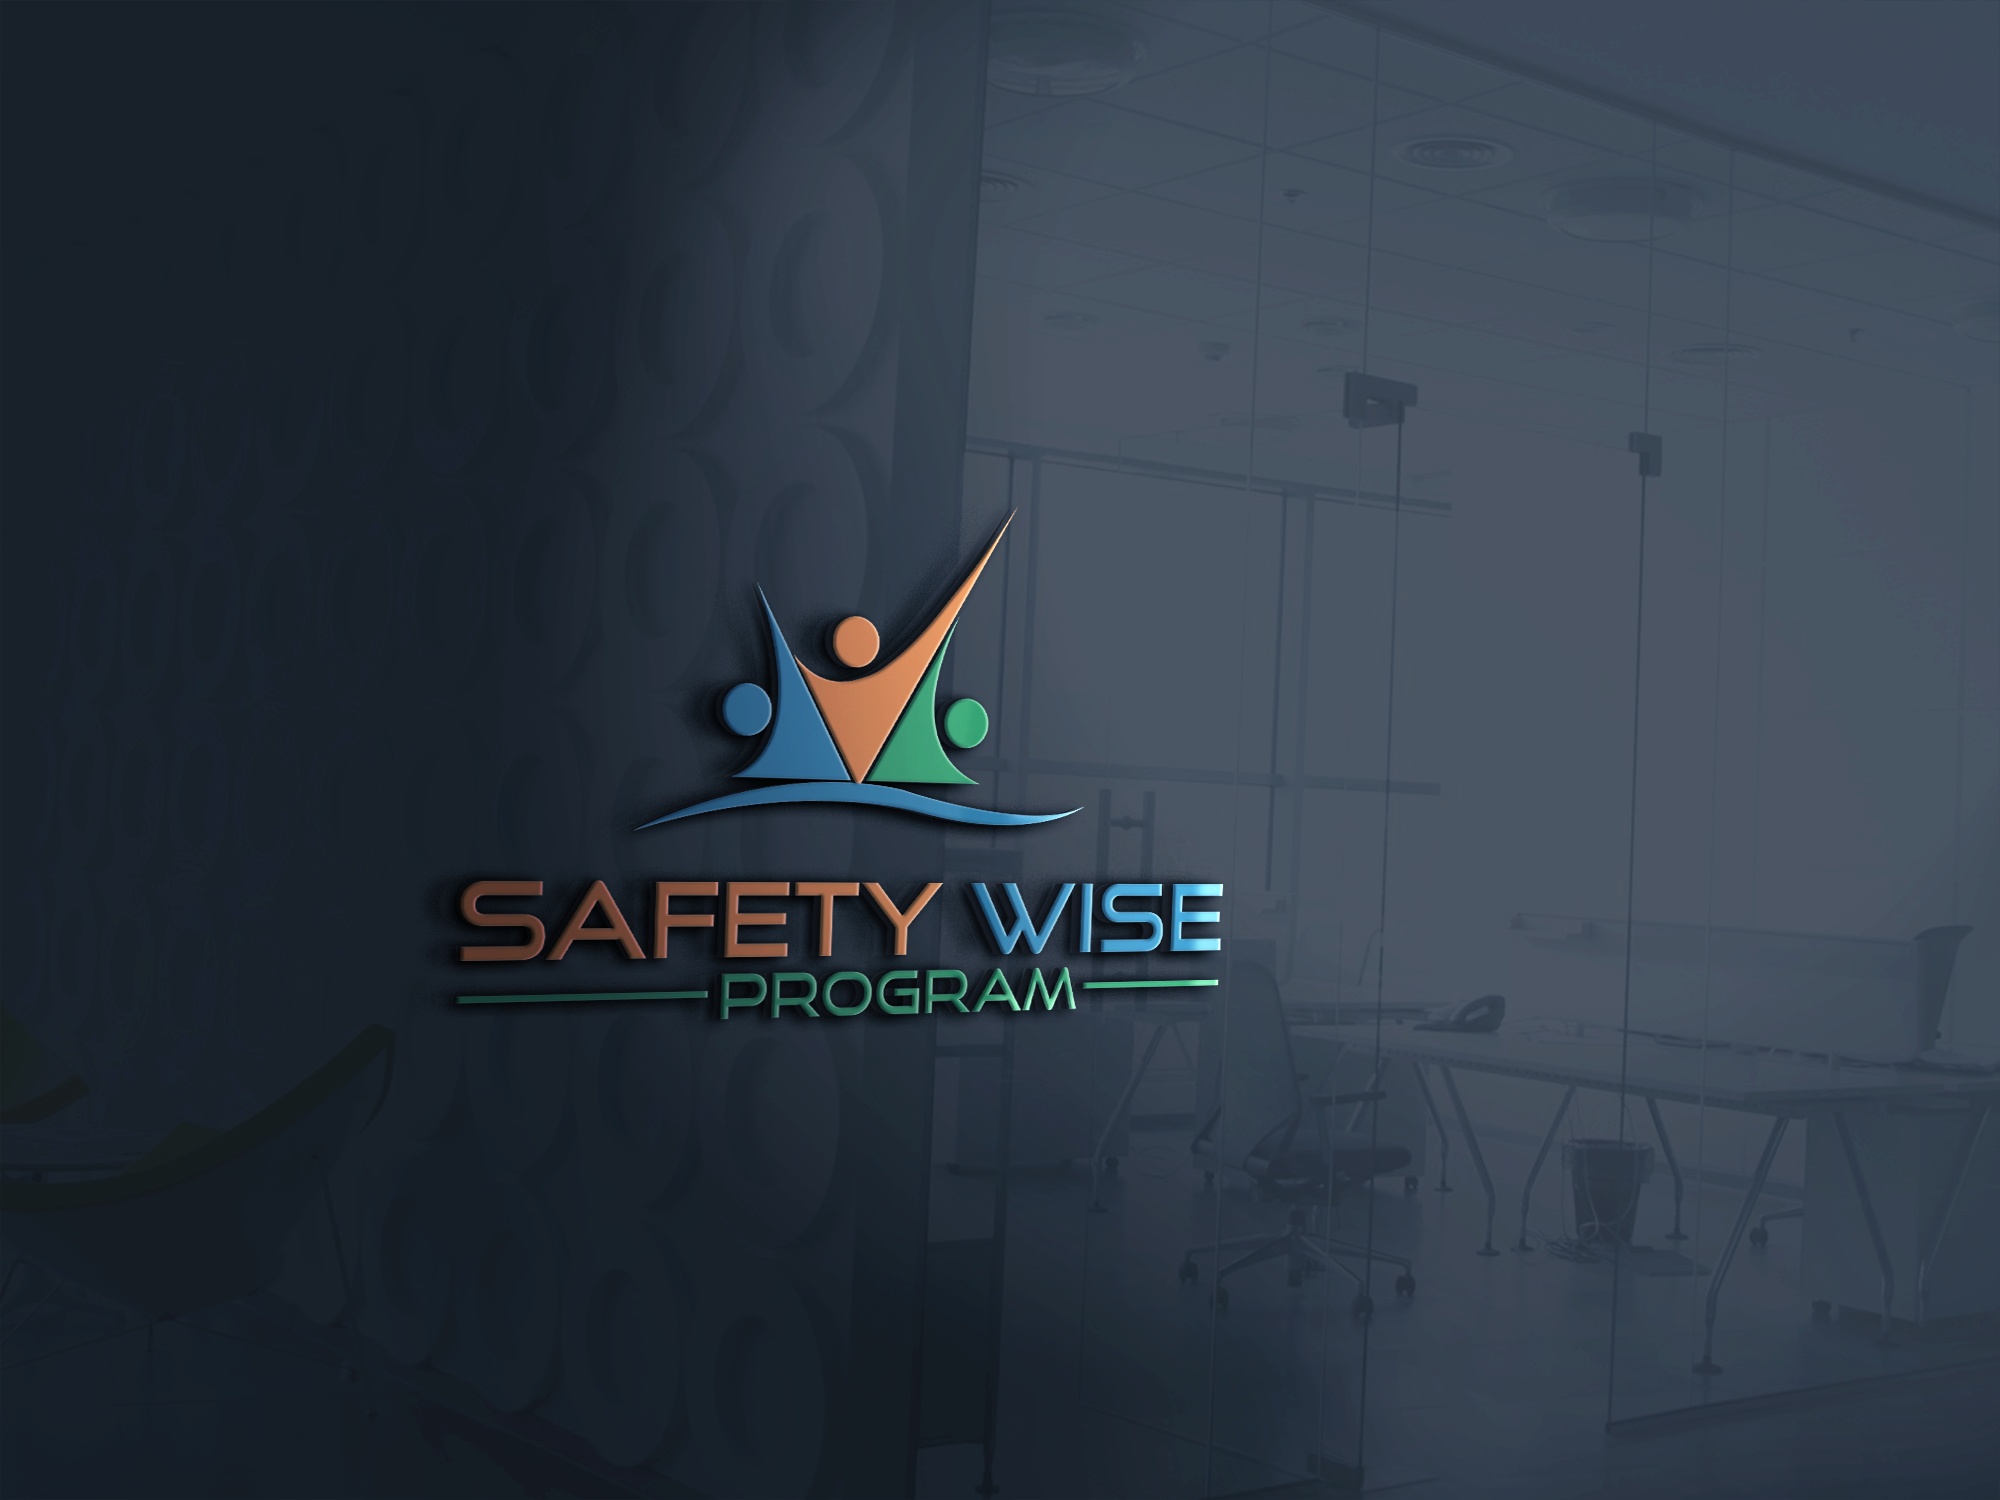 Logo Design by Prohor Ghagra - Entry No. 181 in the Logo Design Contest New Logo Design for Safety Wise Program.